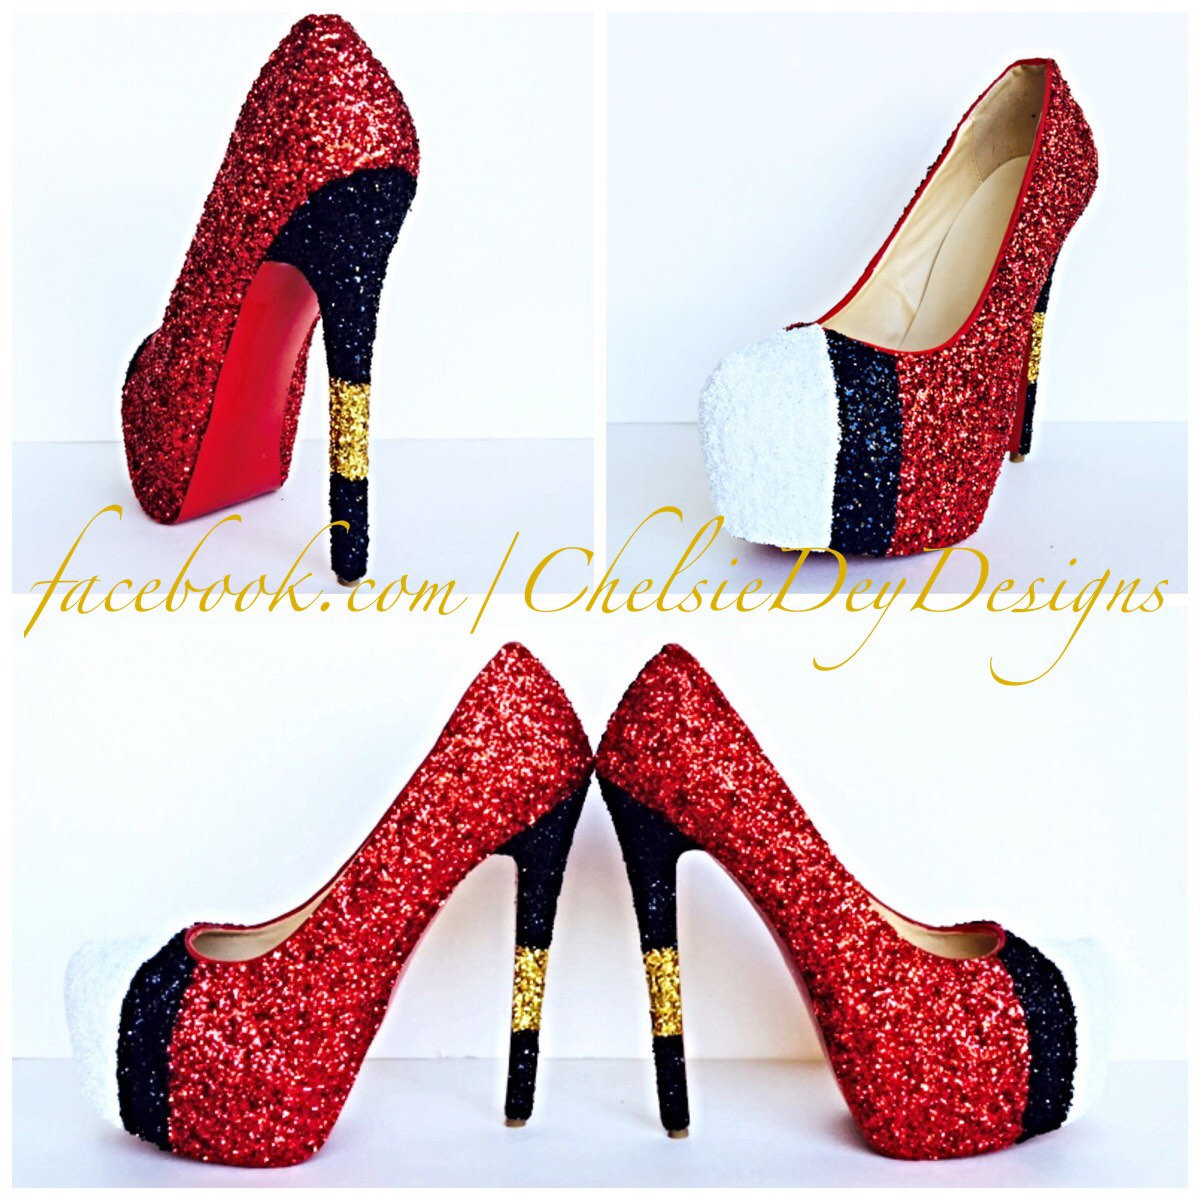 db55bcc066a09 Glitter High Heels - Black and Red Pumps - Swoop Platform Shoes - Sparkly  Wedding Shoes - Glitter Prom Heels - Gold Accents